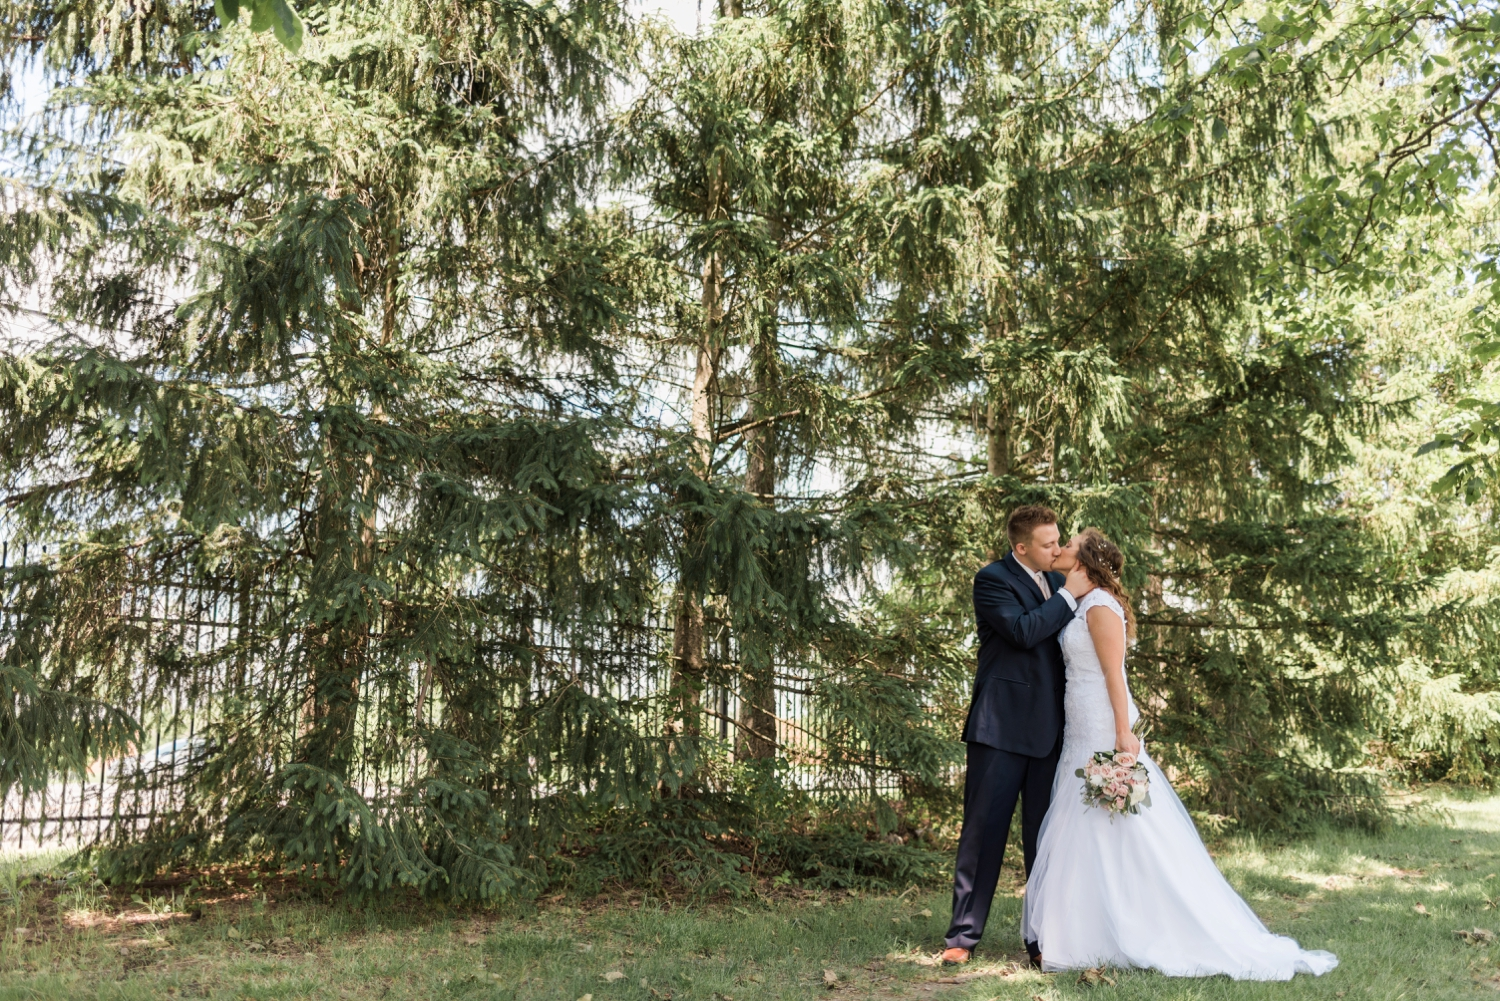 Community_Life_Center_Indianapolis_Indiana_Wedding_Photographer_Chloe_Luka_Photography_6904.jpg